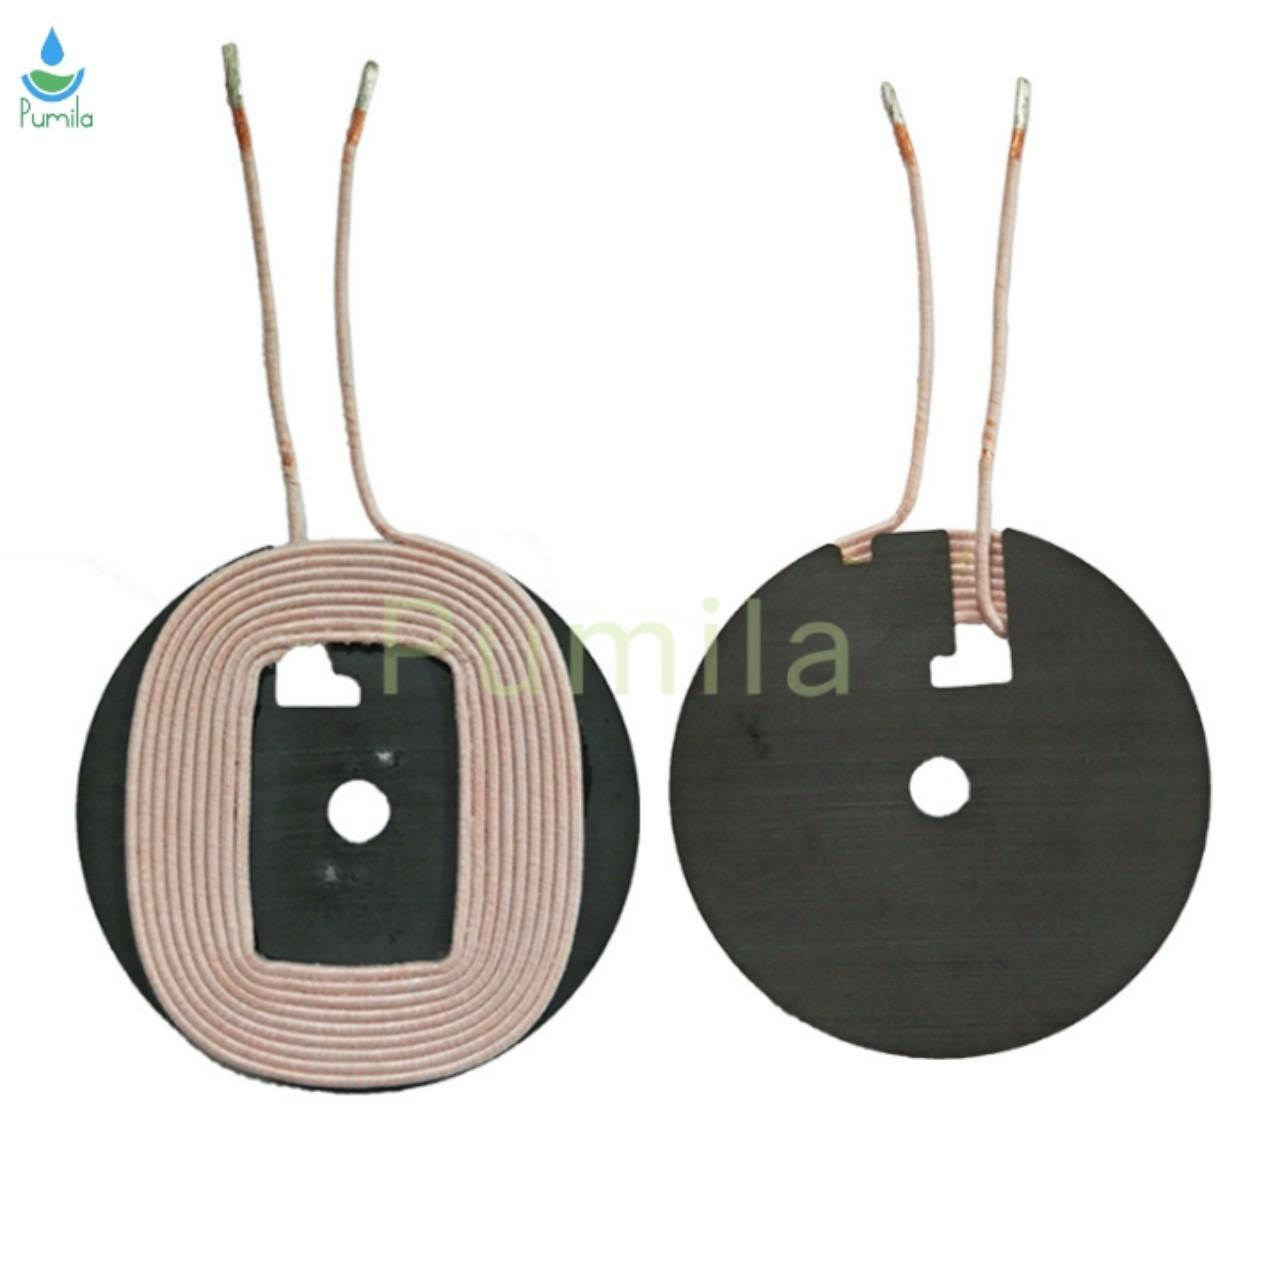 China Electric Component Qi A11 tx coil wireless charging coil a11 inductor air core coil for sale